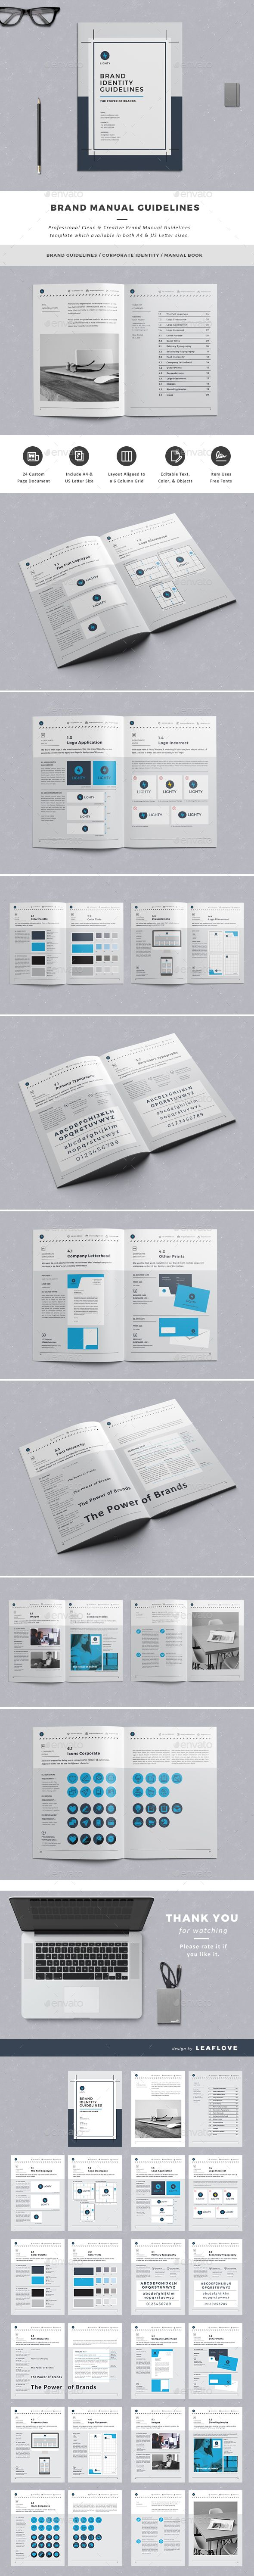 Brand Manual Guidelines Template InDesign INDD #design Download: http://graphicriver.net/item/brand-manual-guidelines/13714713?ref=ksioks